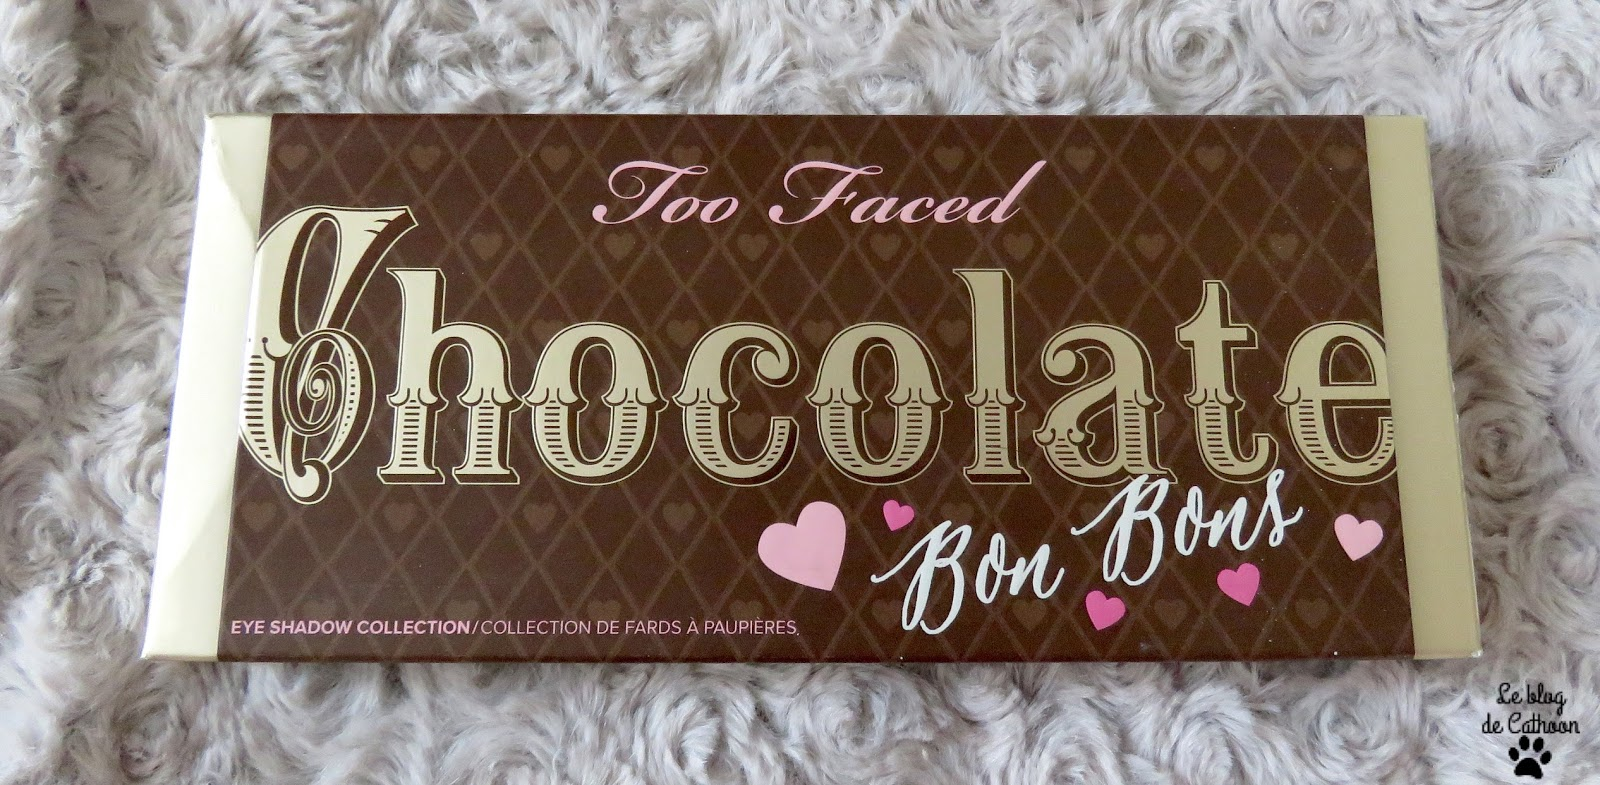 Chocolate Bon Bon de Too Faced